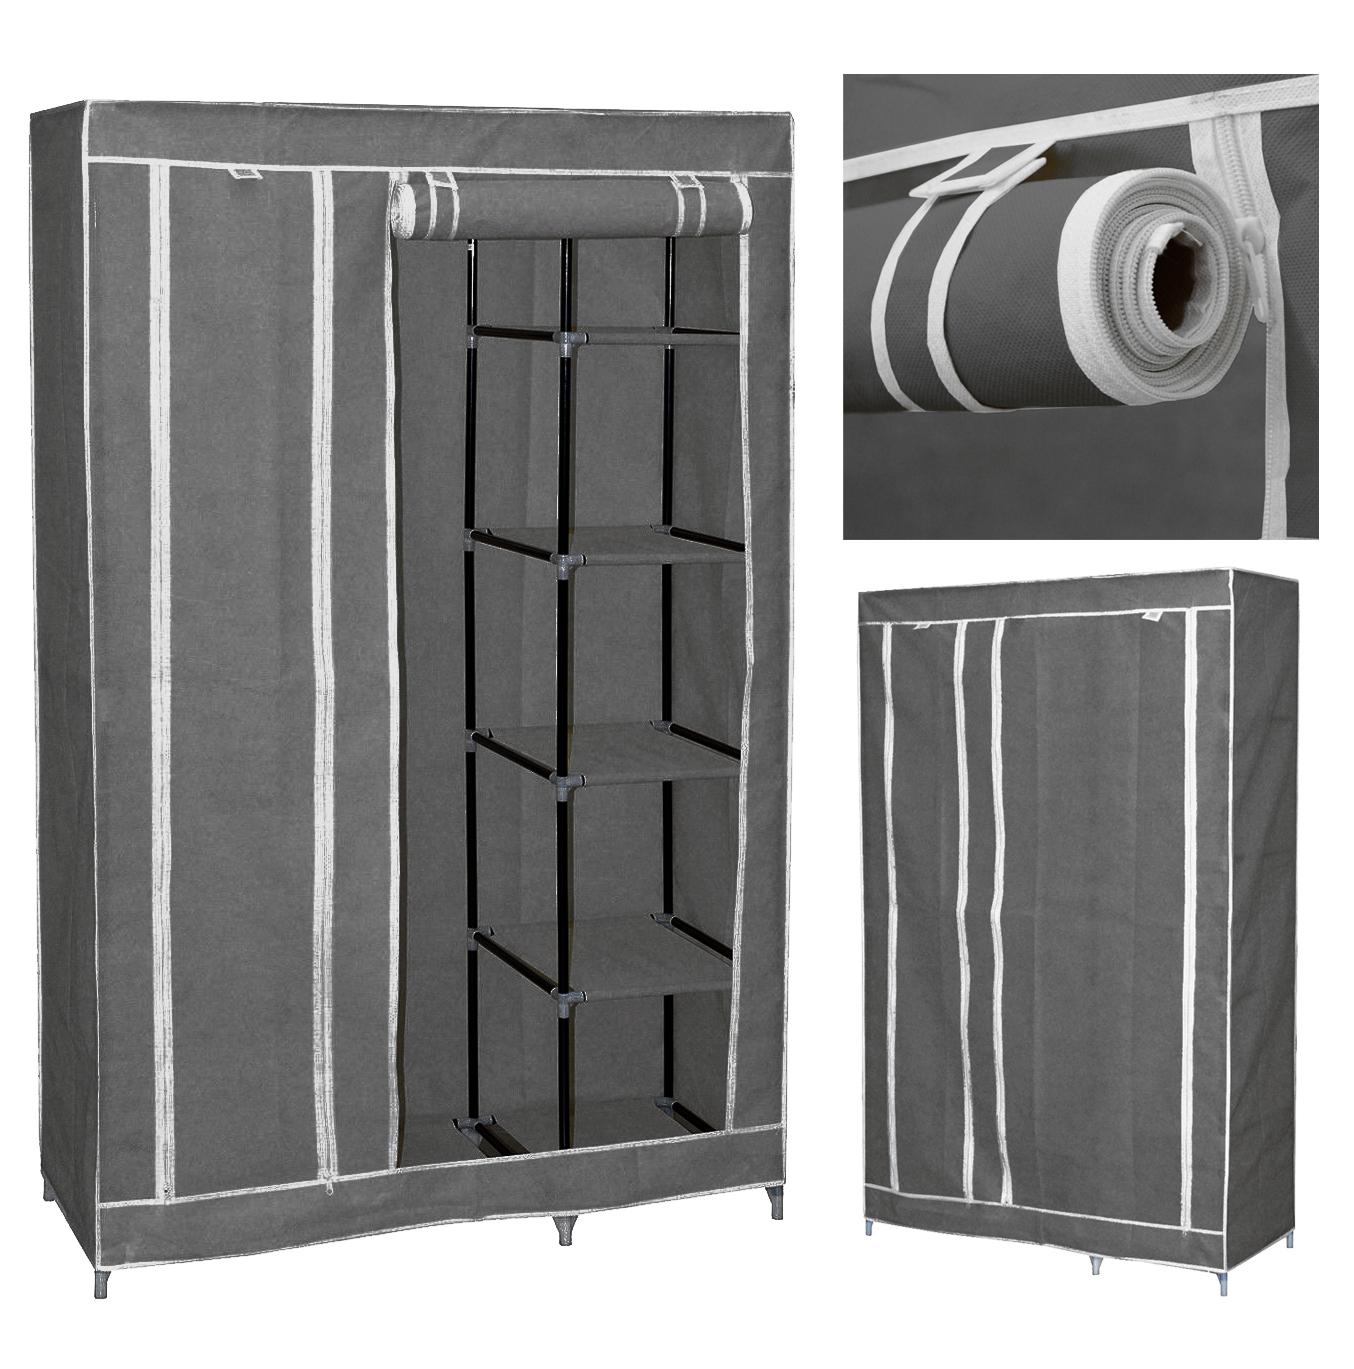 "New 69"" Portable Closet Storage Organizer Wardrobe Clothes Rack with Shelves"